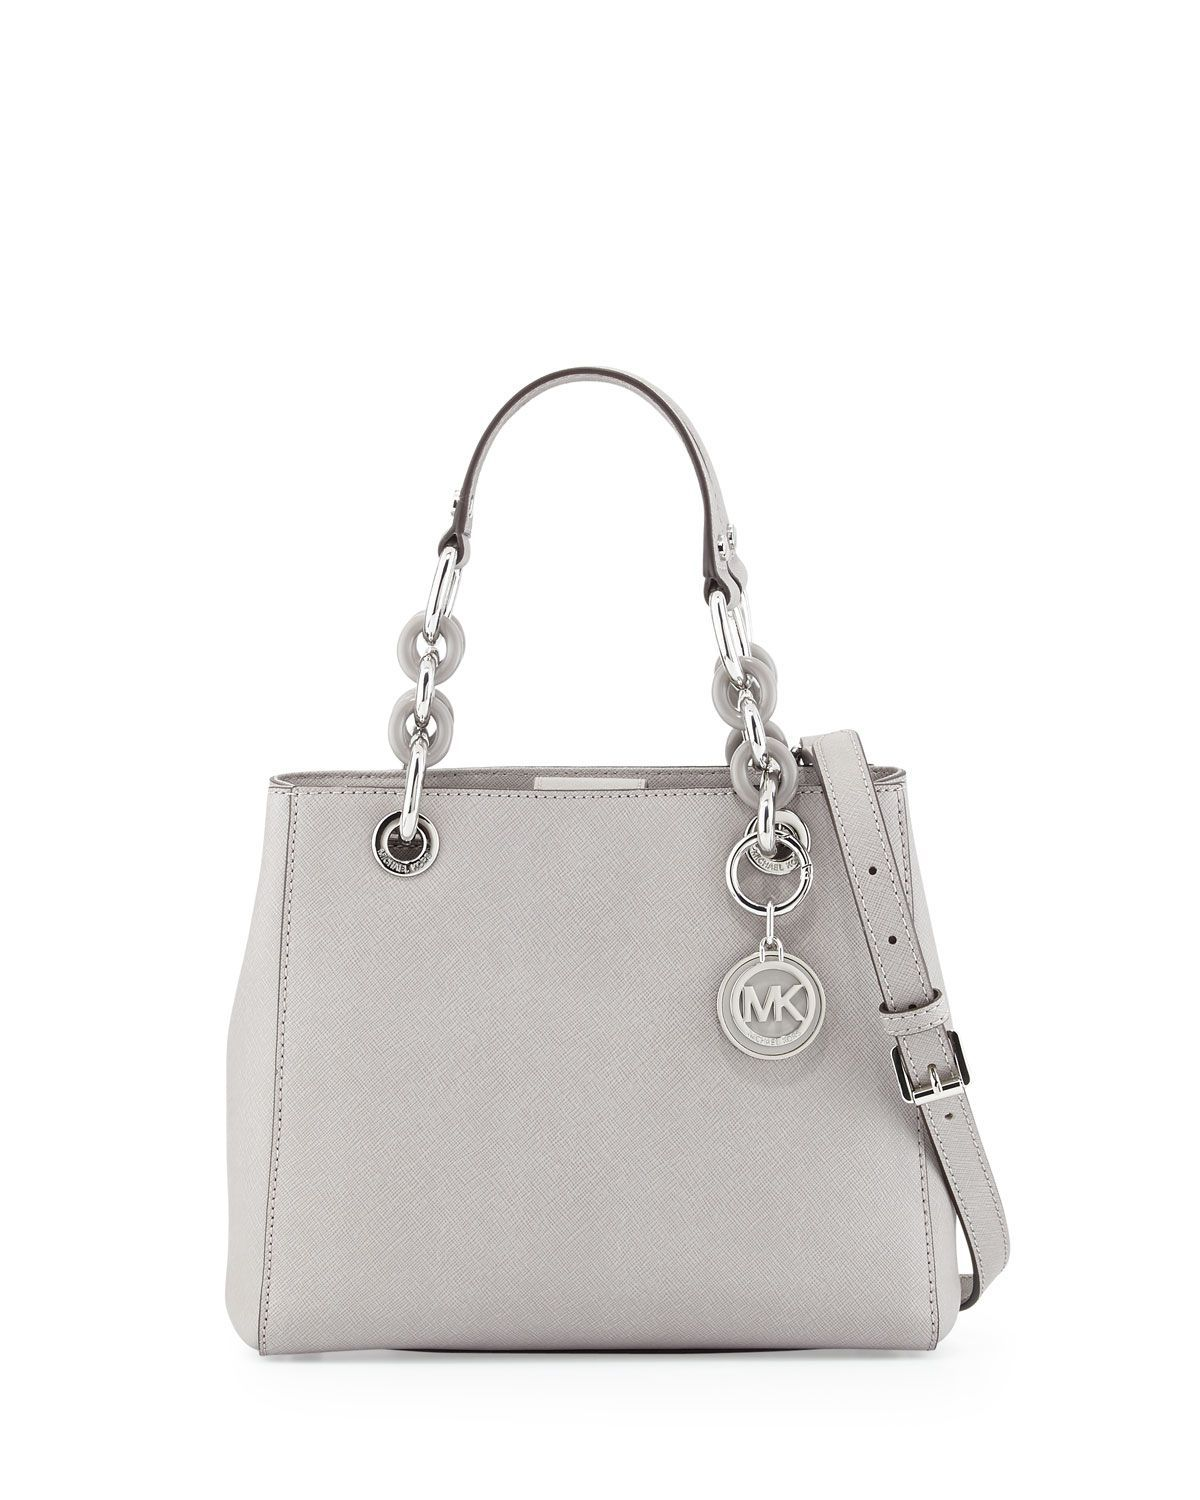 24157f6ce35377 Cynthia Small Saffiano Satchel Bag, Pearl Gray. Find this Pin and more on MK  ...